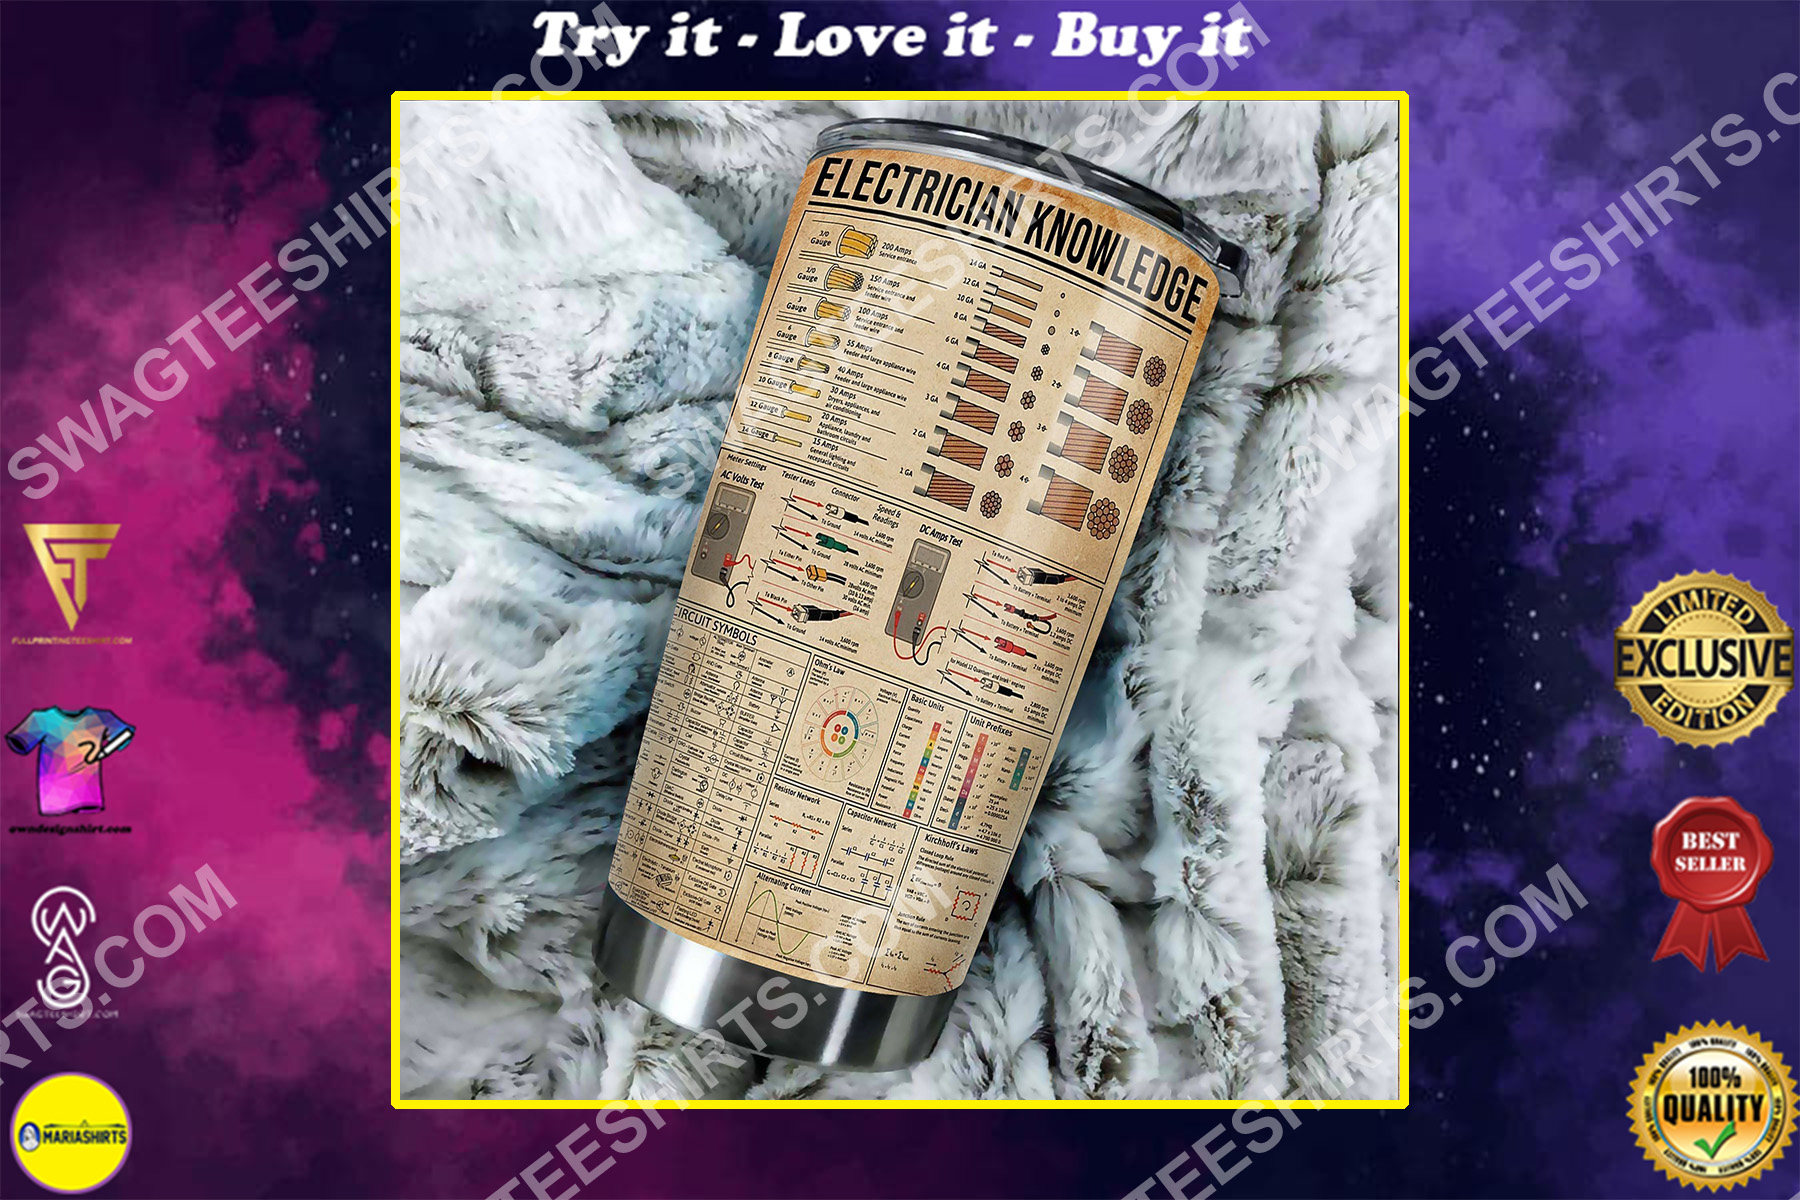 electrician knowledge all over printed stainless steel tumbler